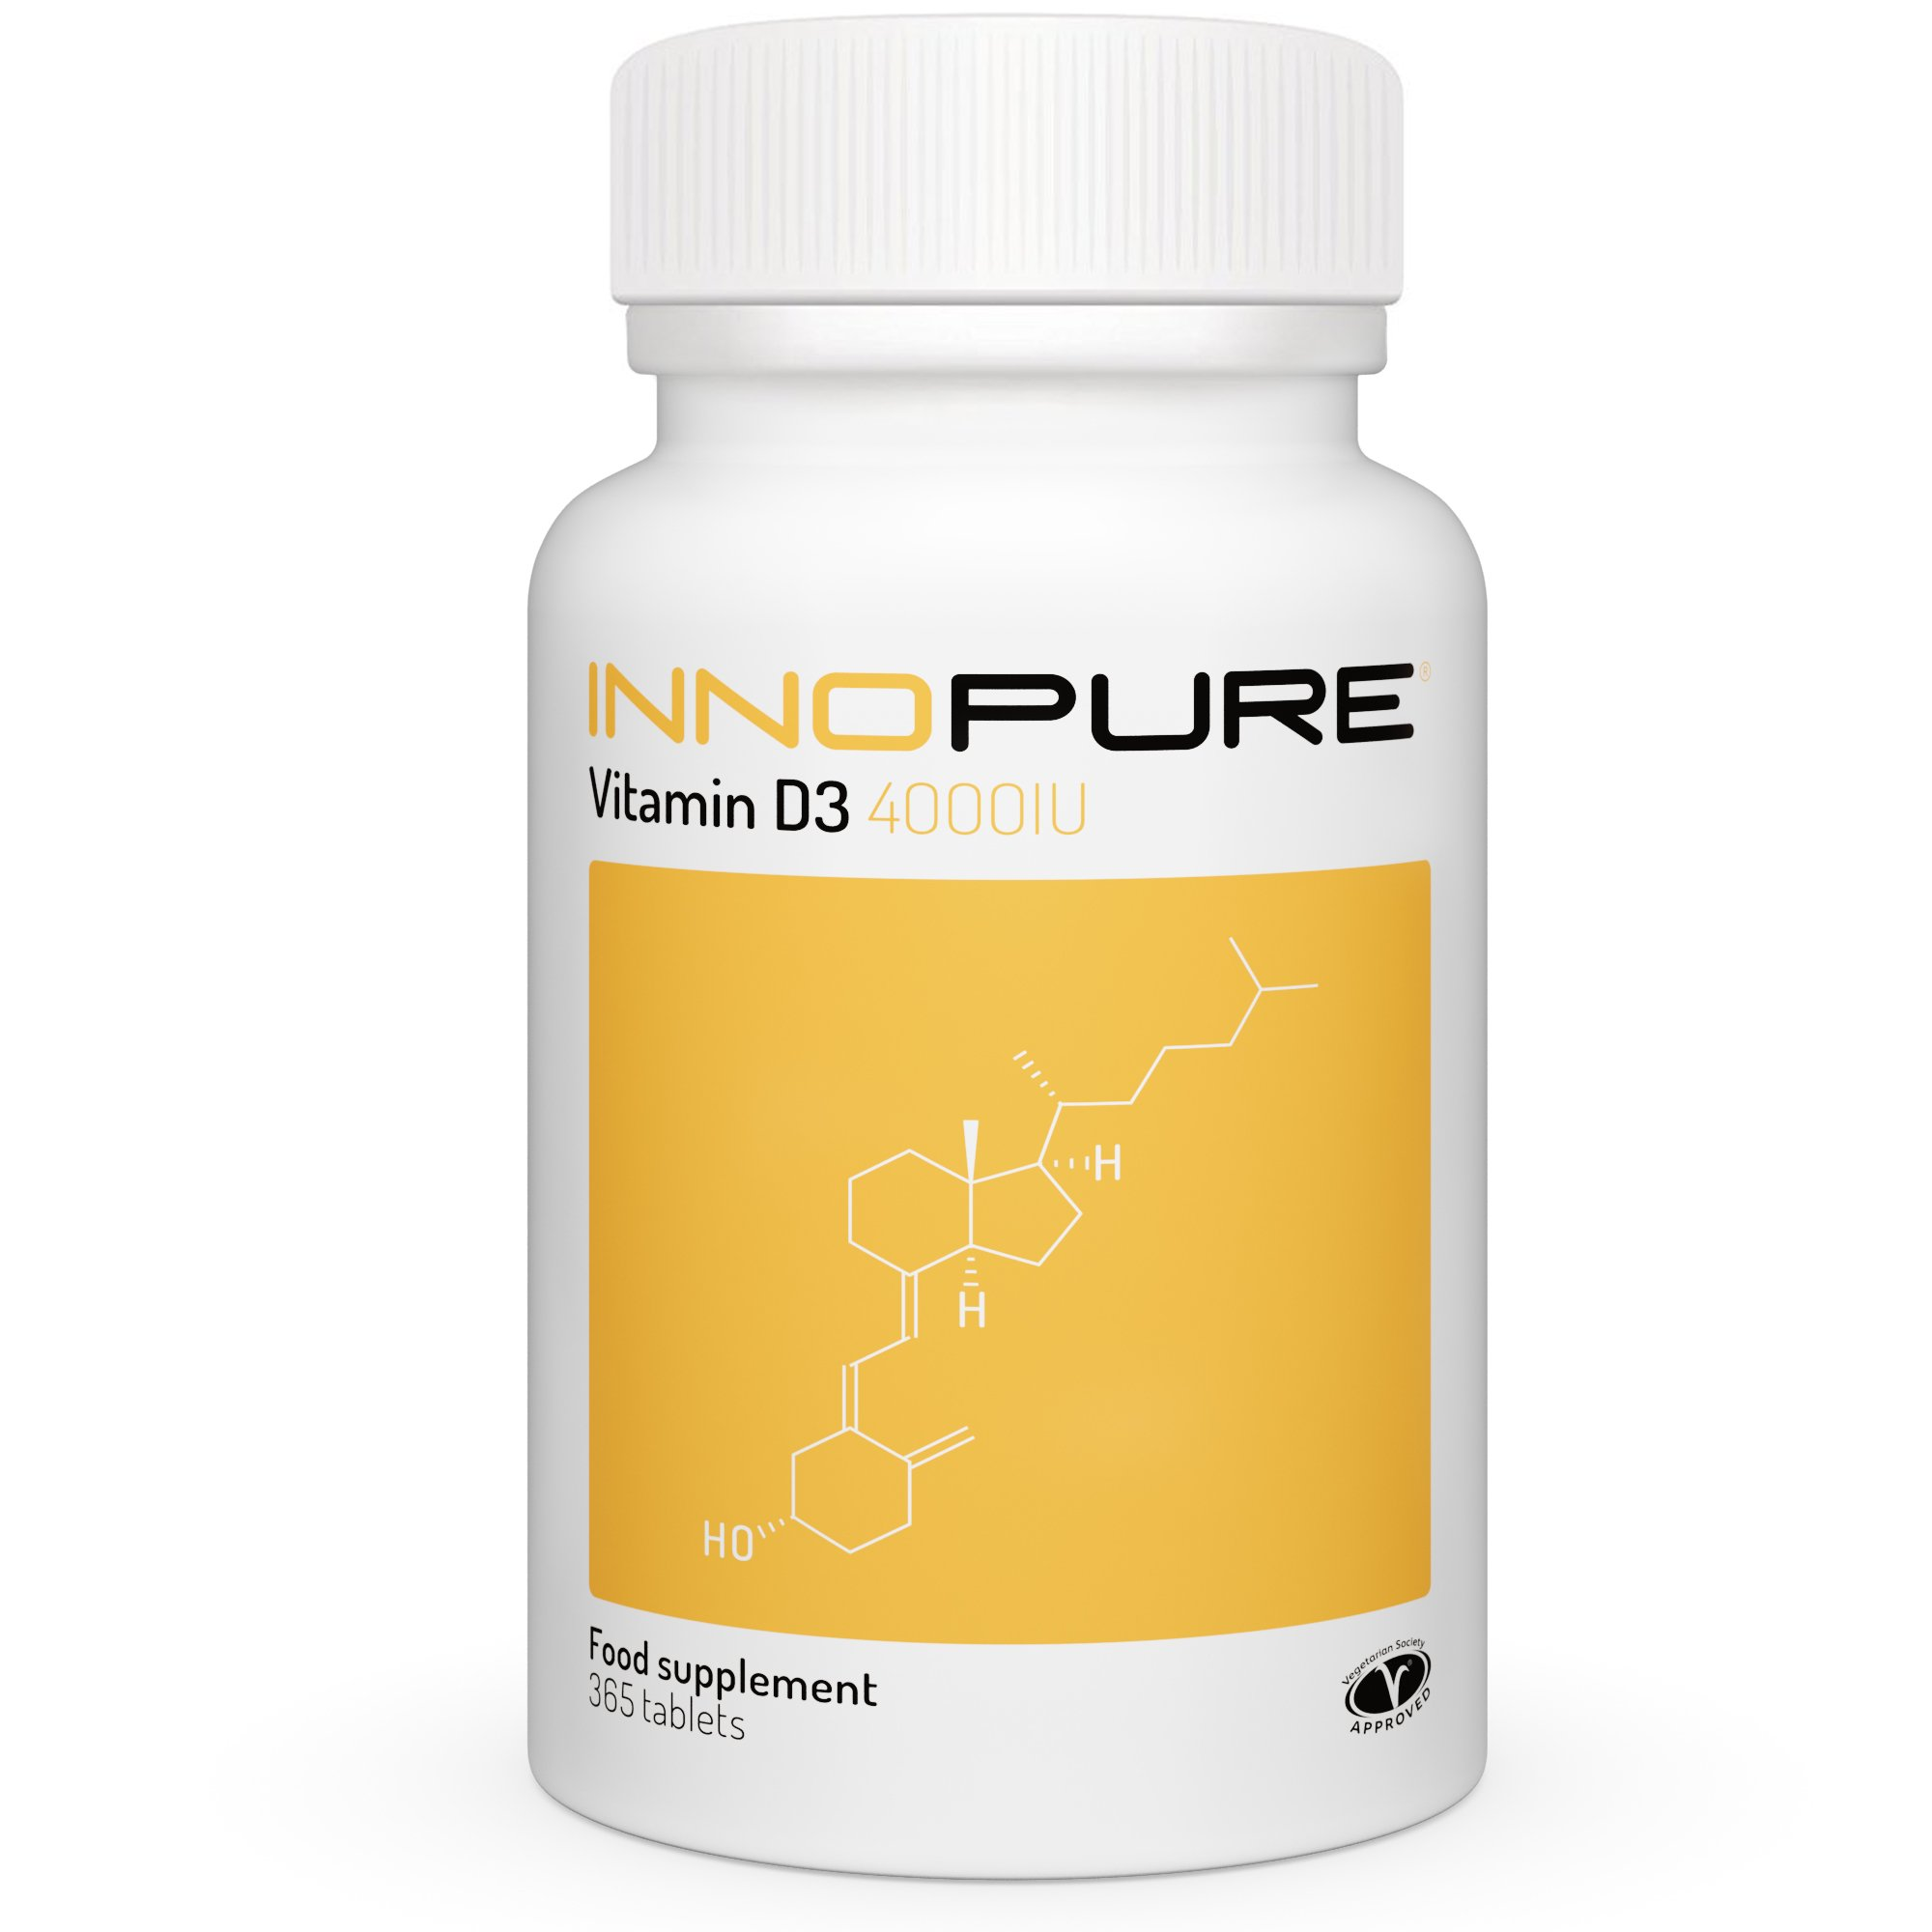 Innopure Vitamin D3 4,000 IU | Vegetarian Society Approved | 1 Year Supply 365 Tablets product image